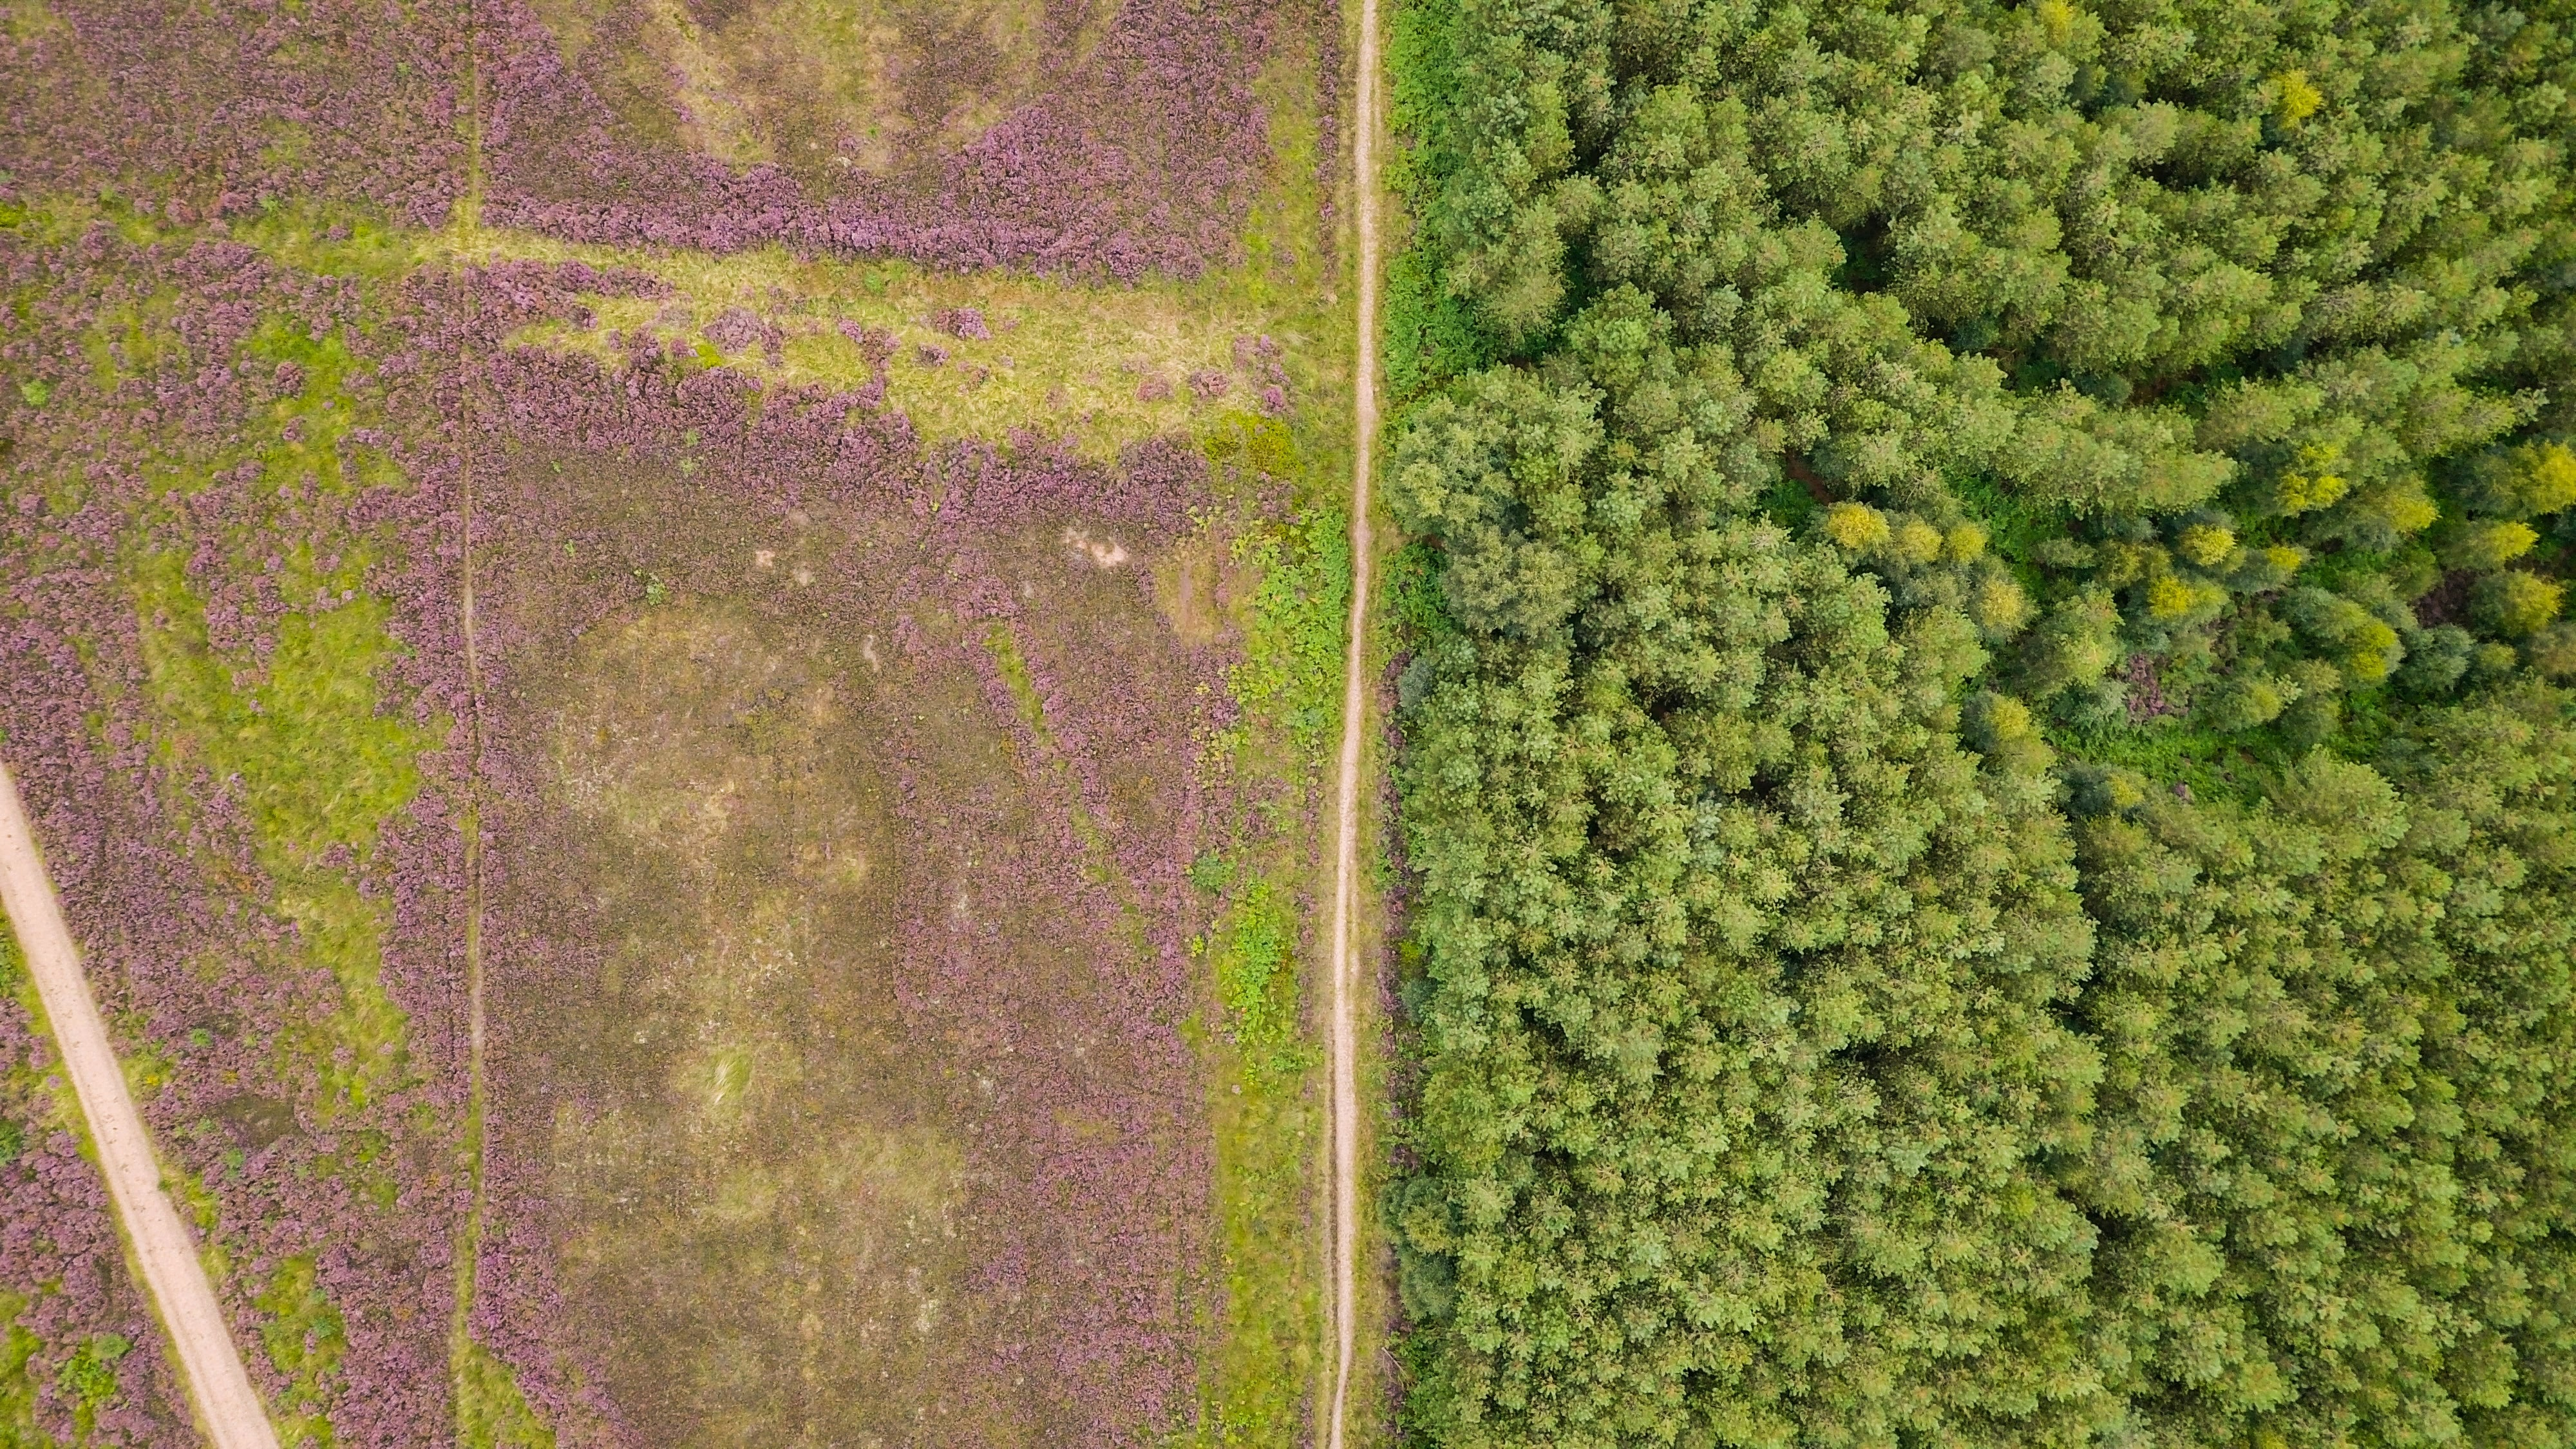 bird's-view photo of field and forest